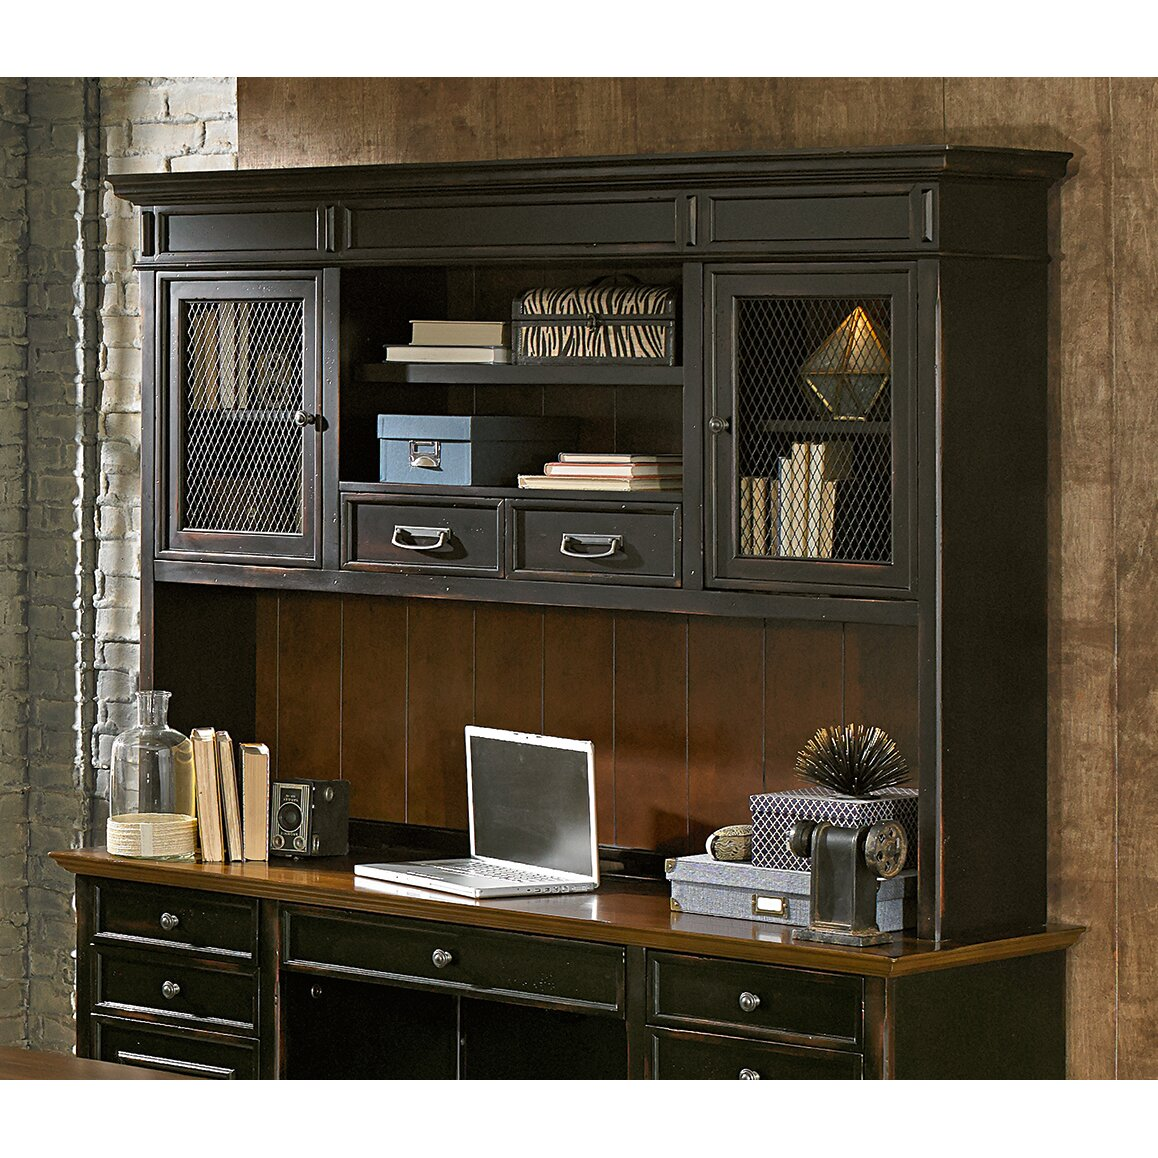 Home Office Sets Painted Office 5 Piece: Kathy Ireland Home By Martin Furniture Hartford 5 Piece